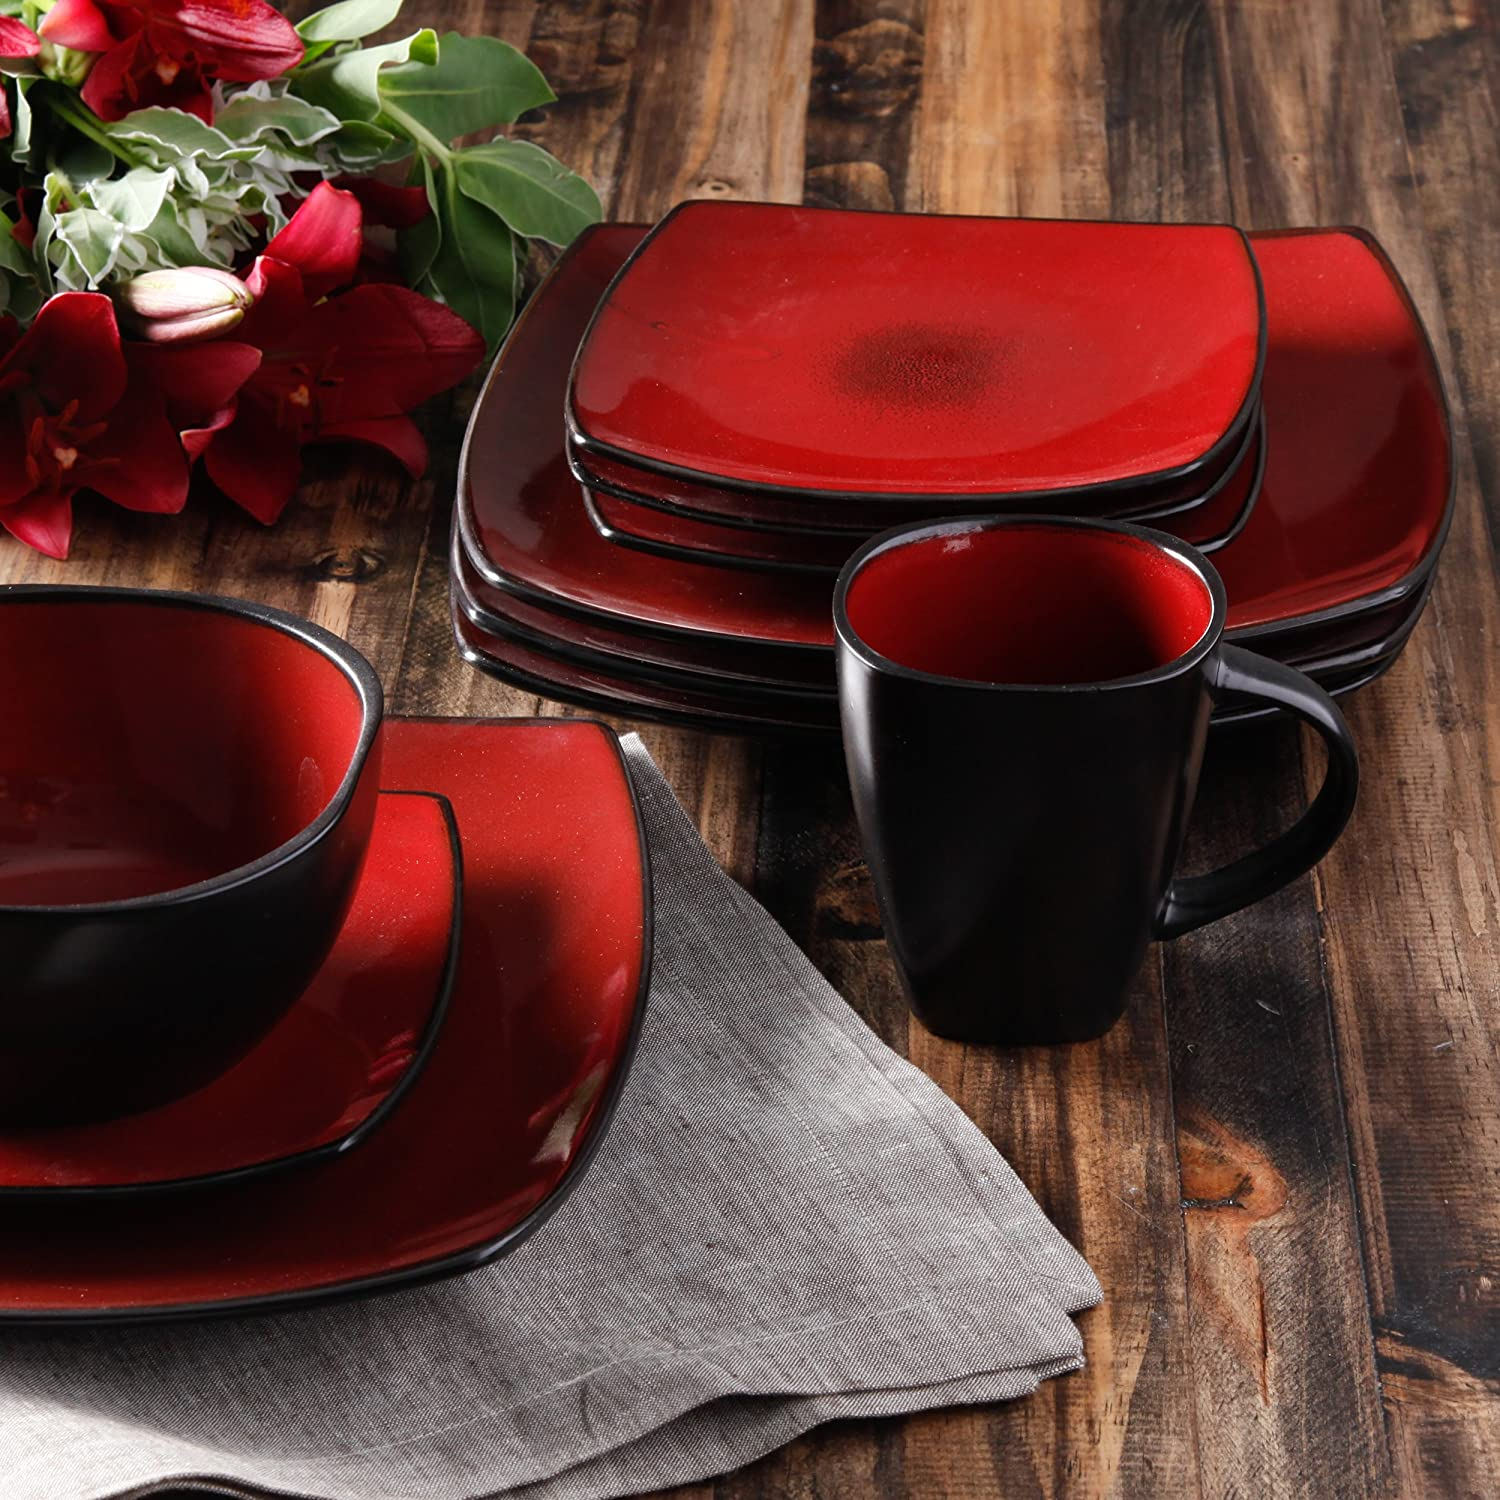 For anyone with a small family or the desire for the best dinnerware for low-key dinners with friends this crockery set makes a refreshing change from the ... & The Best Dinnerware Sets In 2018: Top-Rated Plates And Bowls